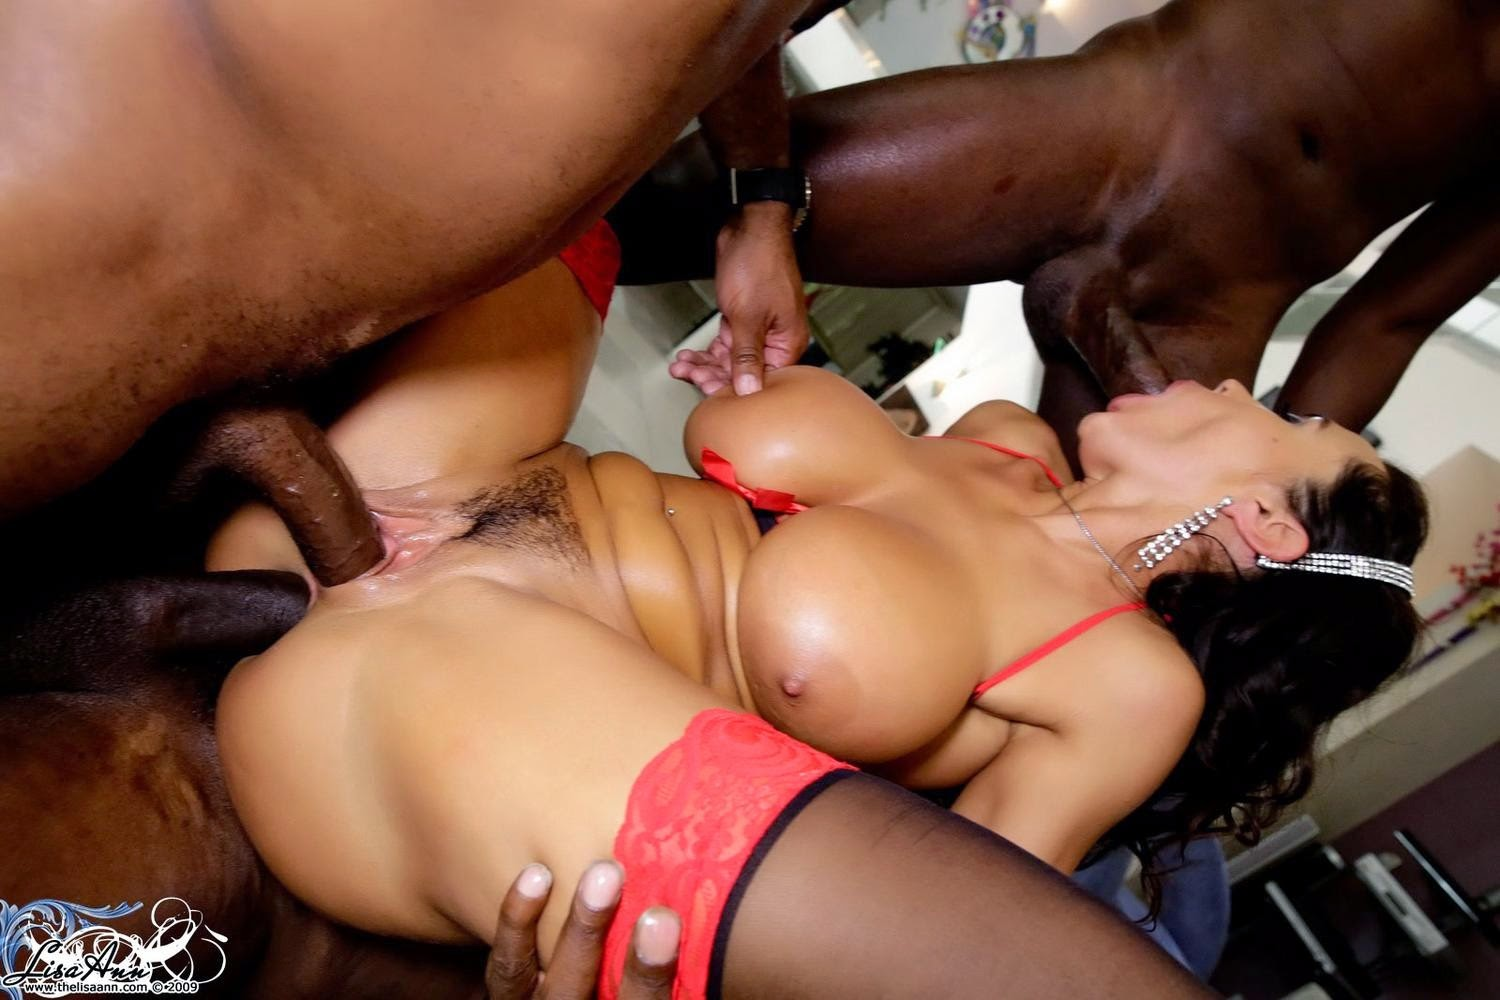 Lisa ann interracial anal idea